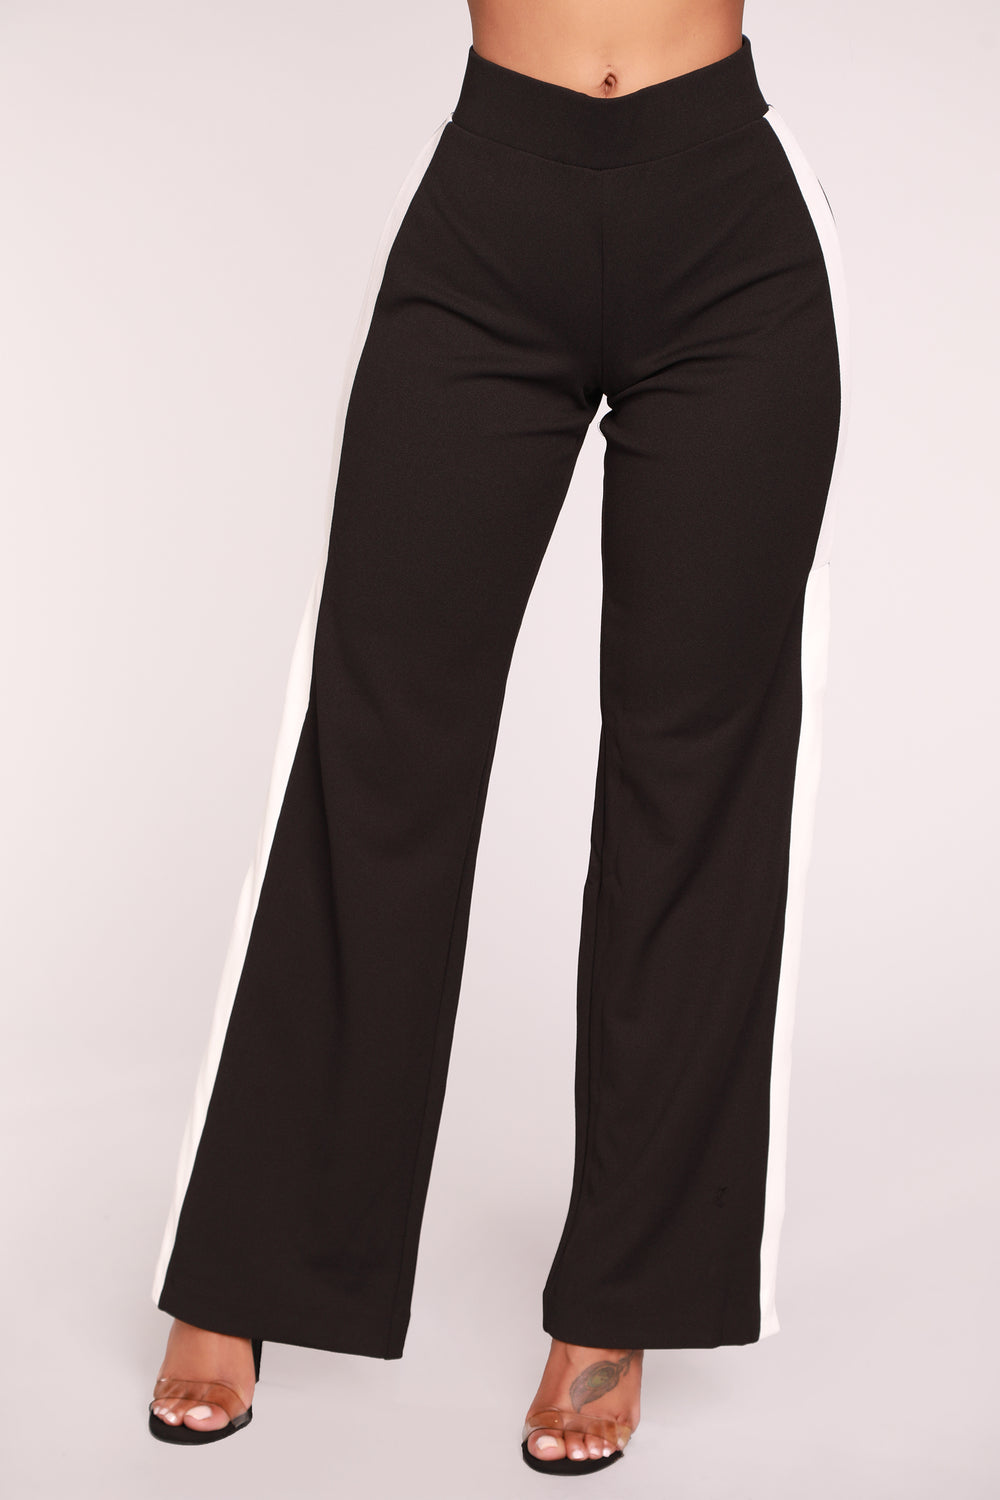 Snap Me Back Snap Pants - Black